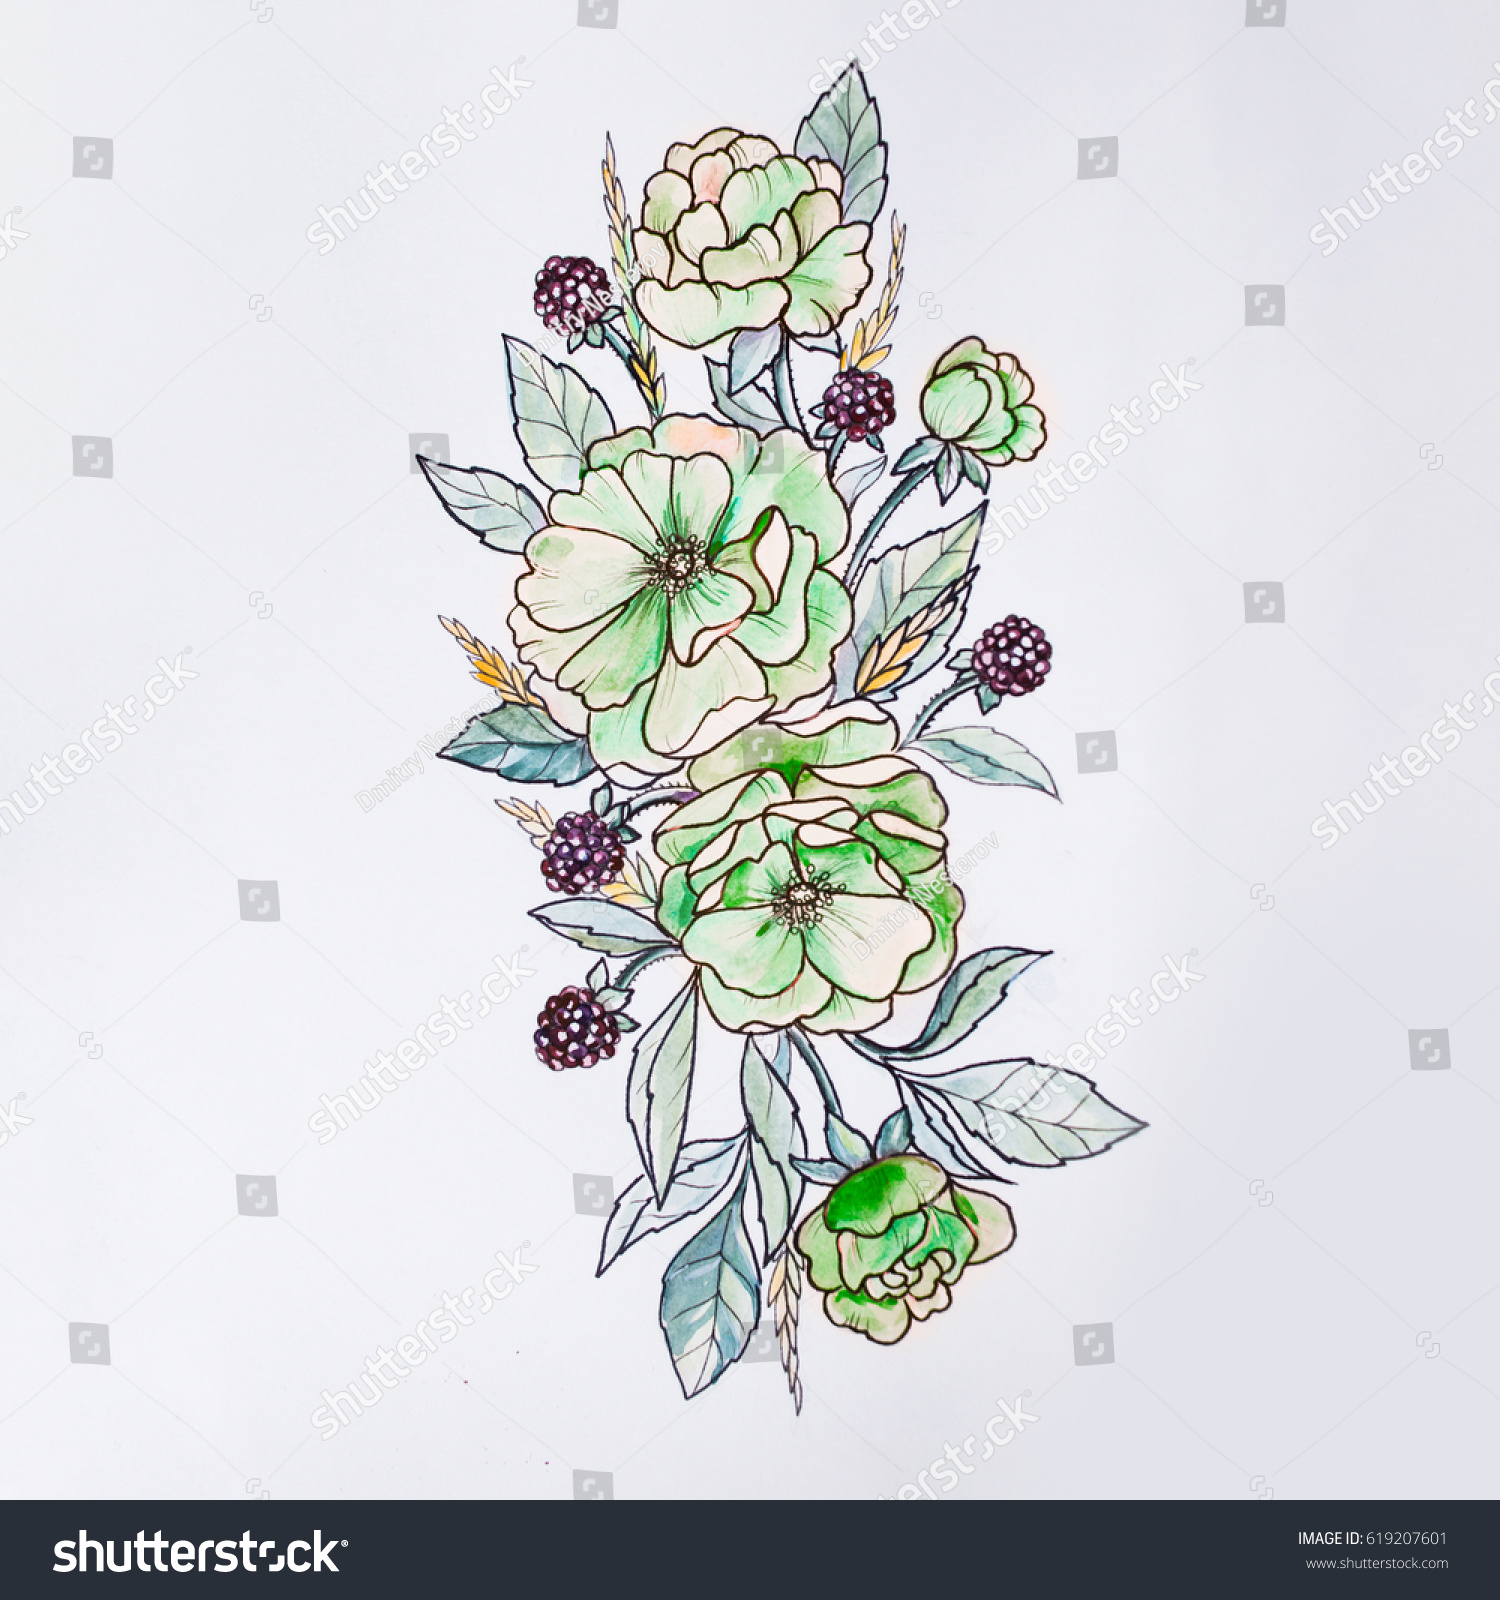 Sketch of beautiful flowers on a white background ez canvas izmirmasajfo